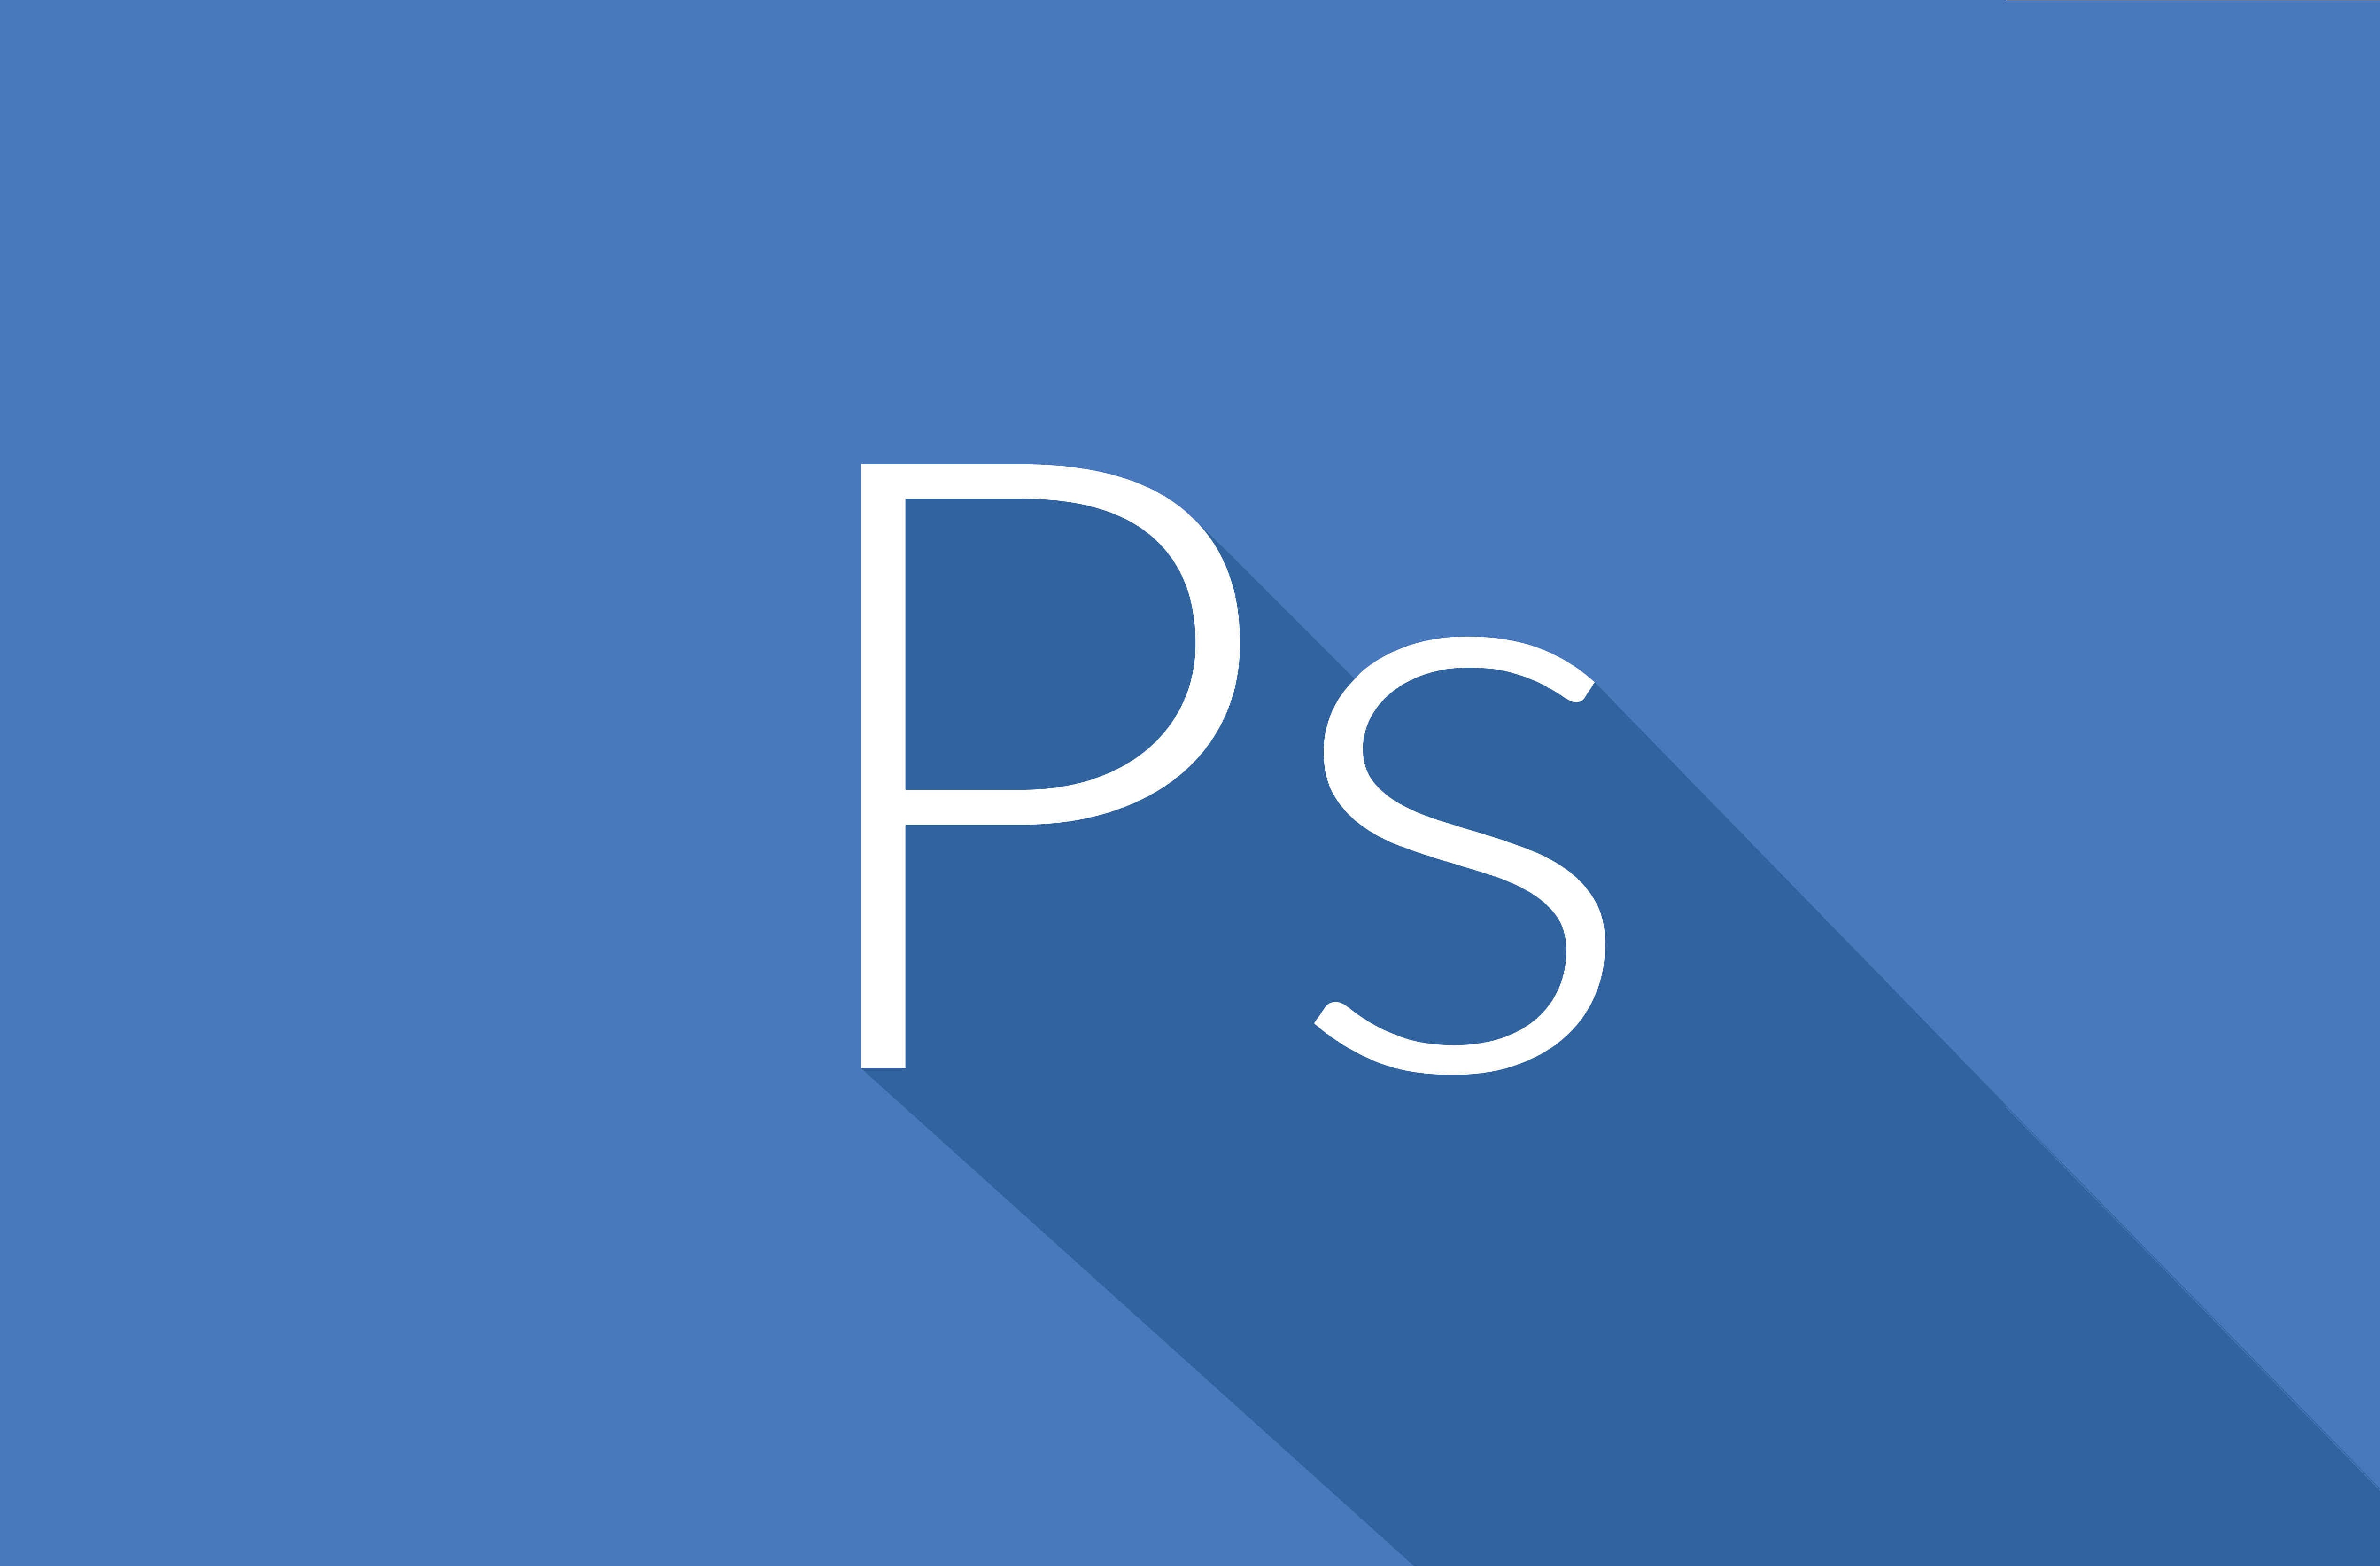 Download pics and photoshop cs6 free full version pc crack mac